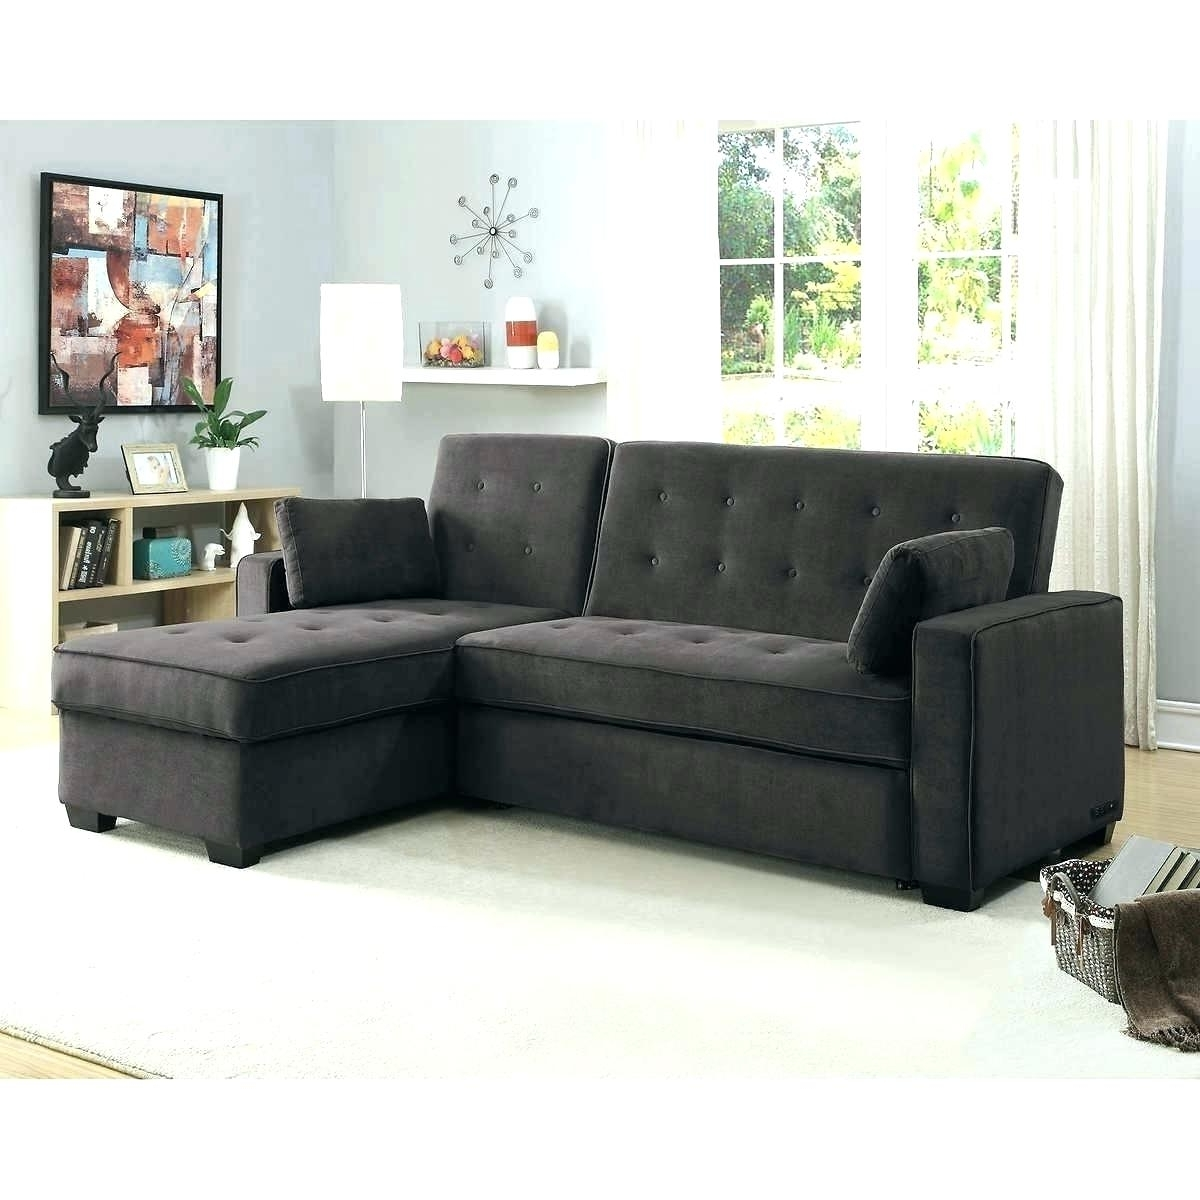 Well Known Berkline Sectional Leather Sofas Recliner – Poikilothermia Intended For Berkline Sectional Sofas (View 19 of 20)